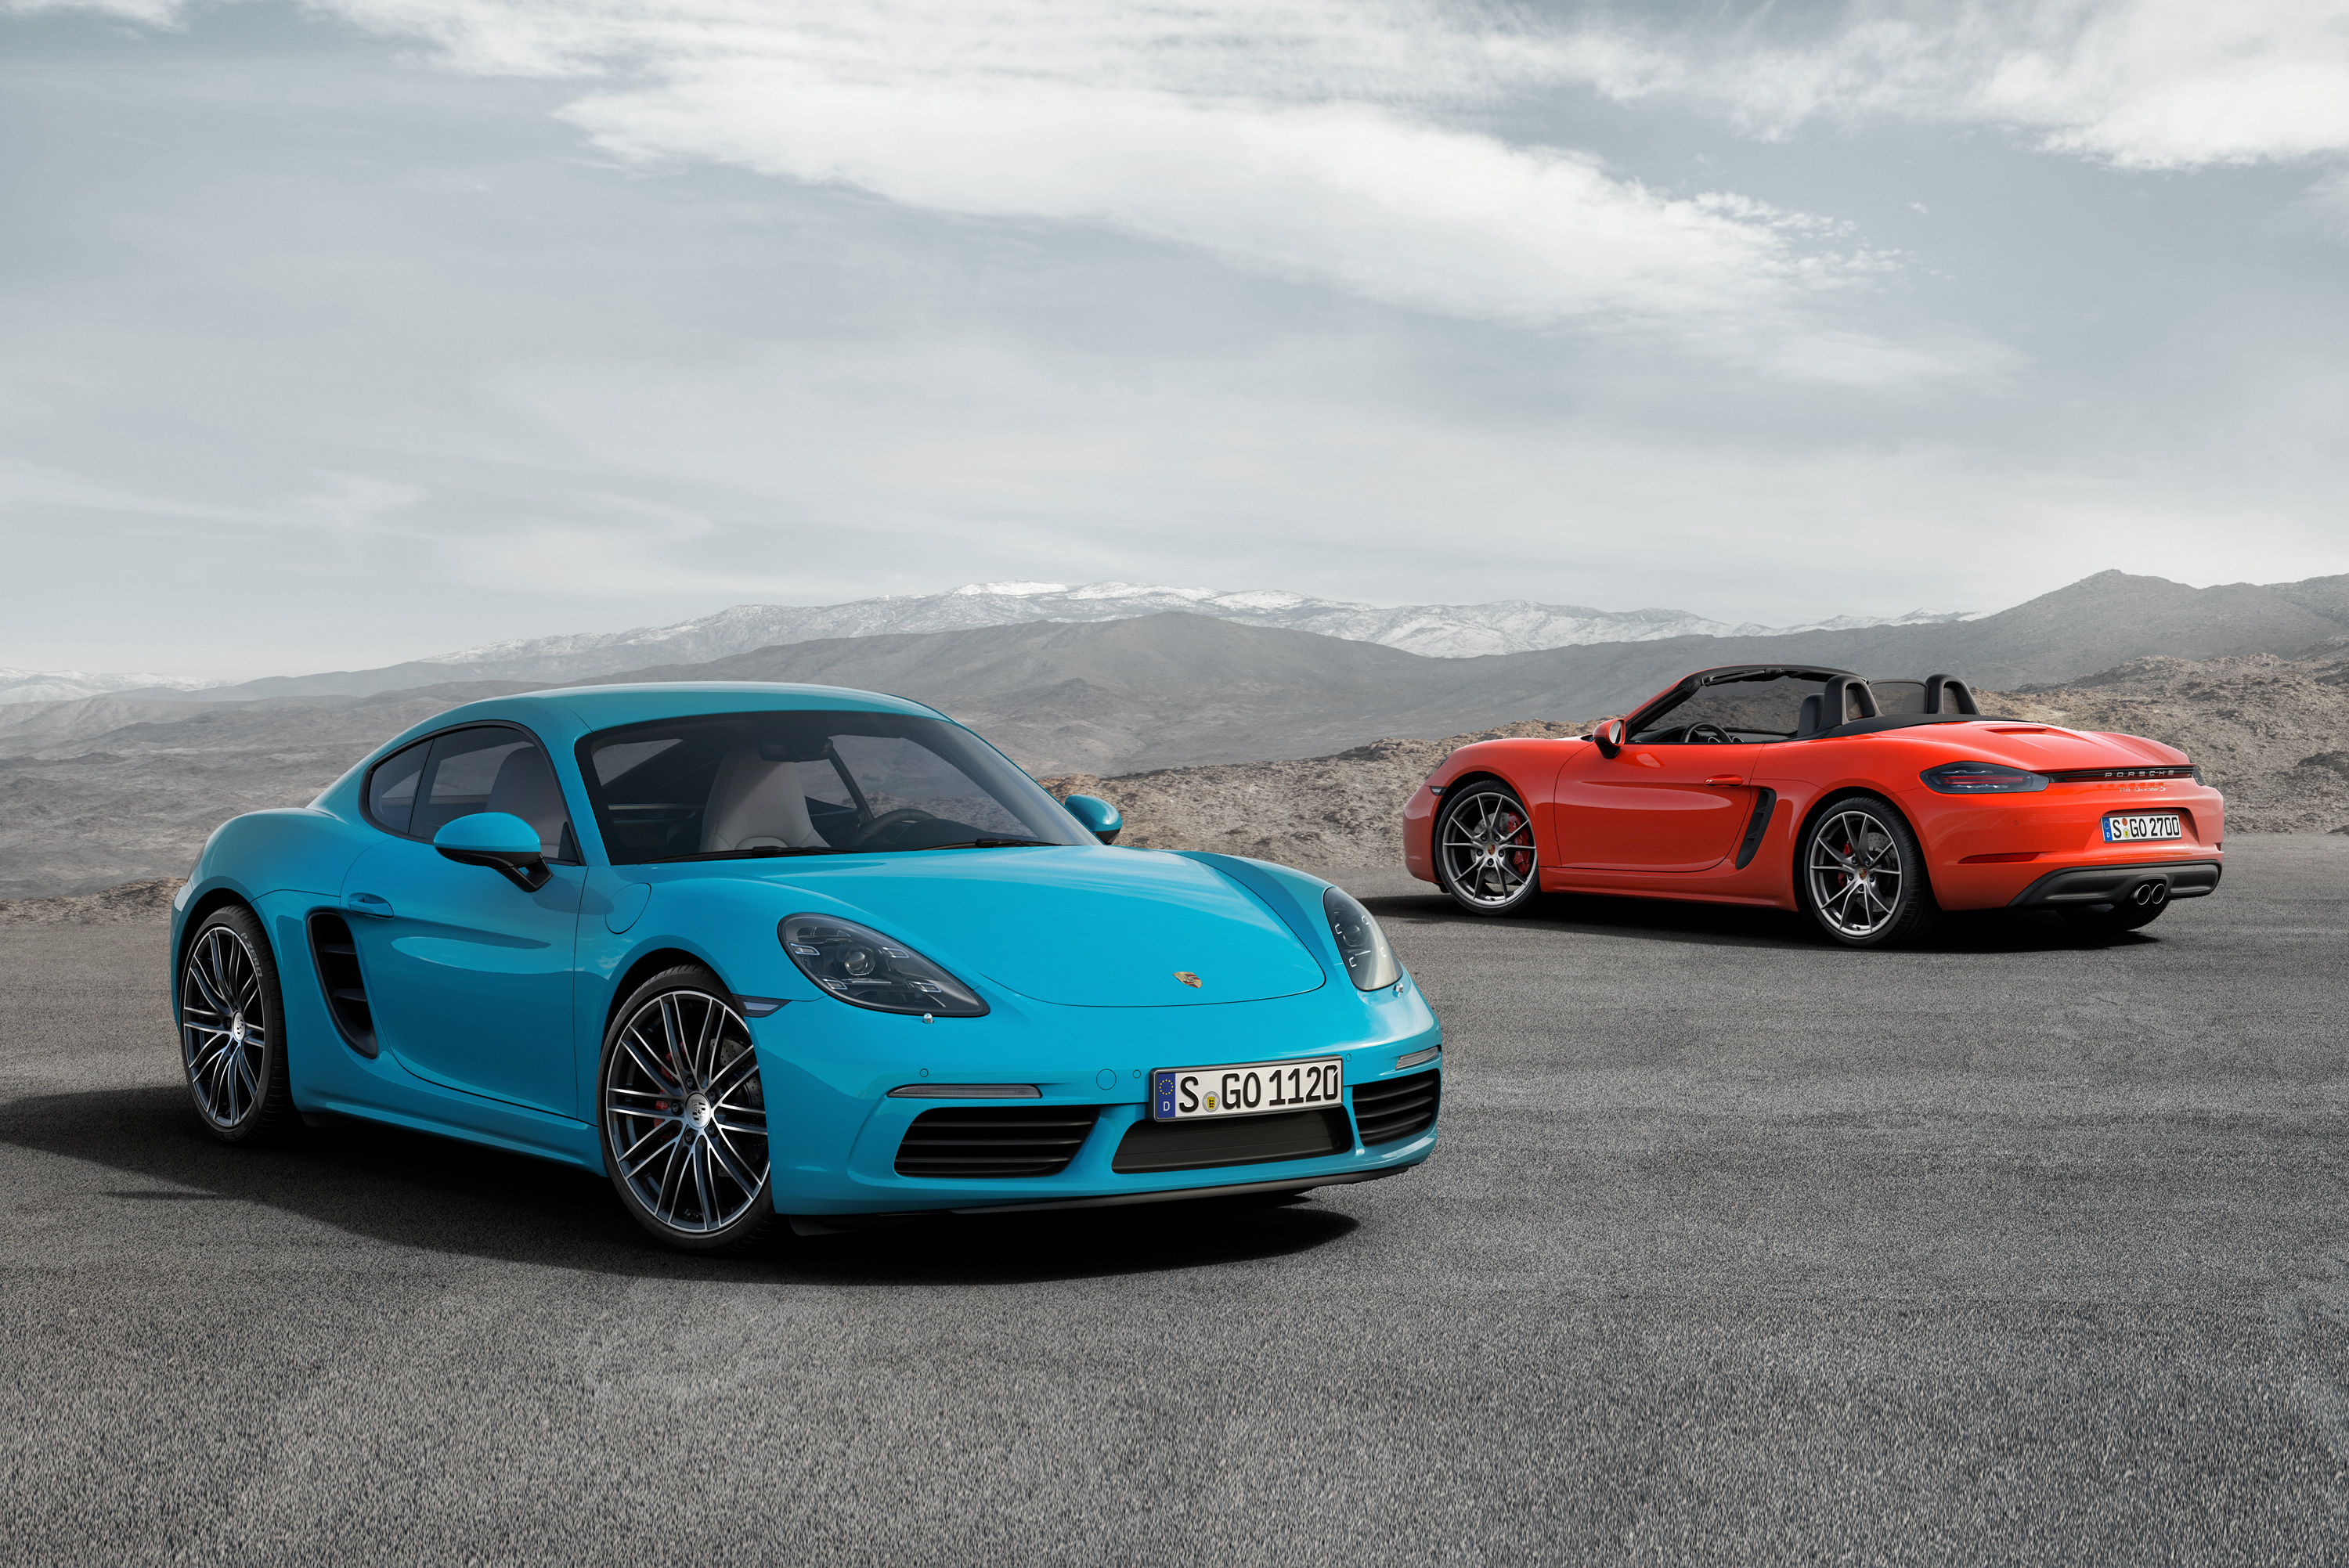 <p>It was a rare privilege to enjoy Porsche&#8217;s offering. Both models should provide their owners with many years of enjoyable motoring.</p>